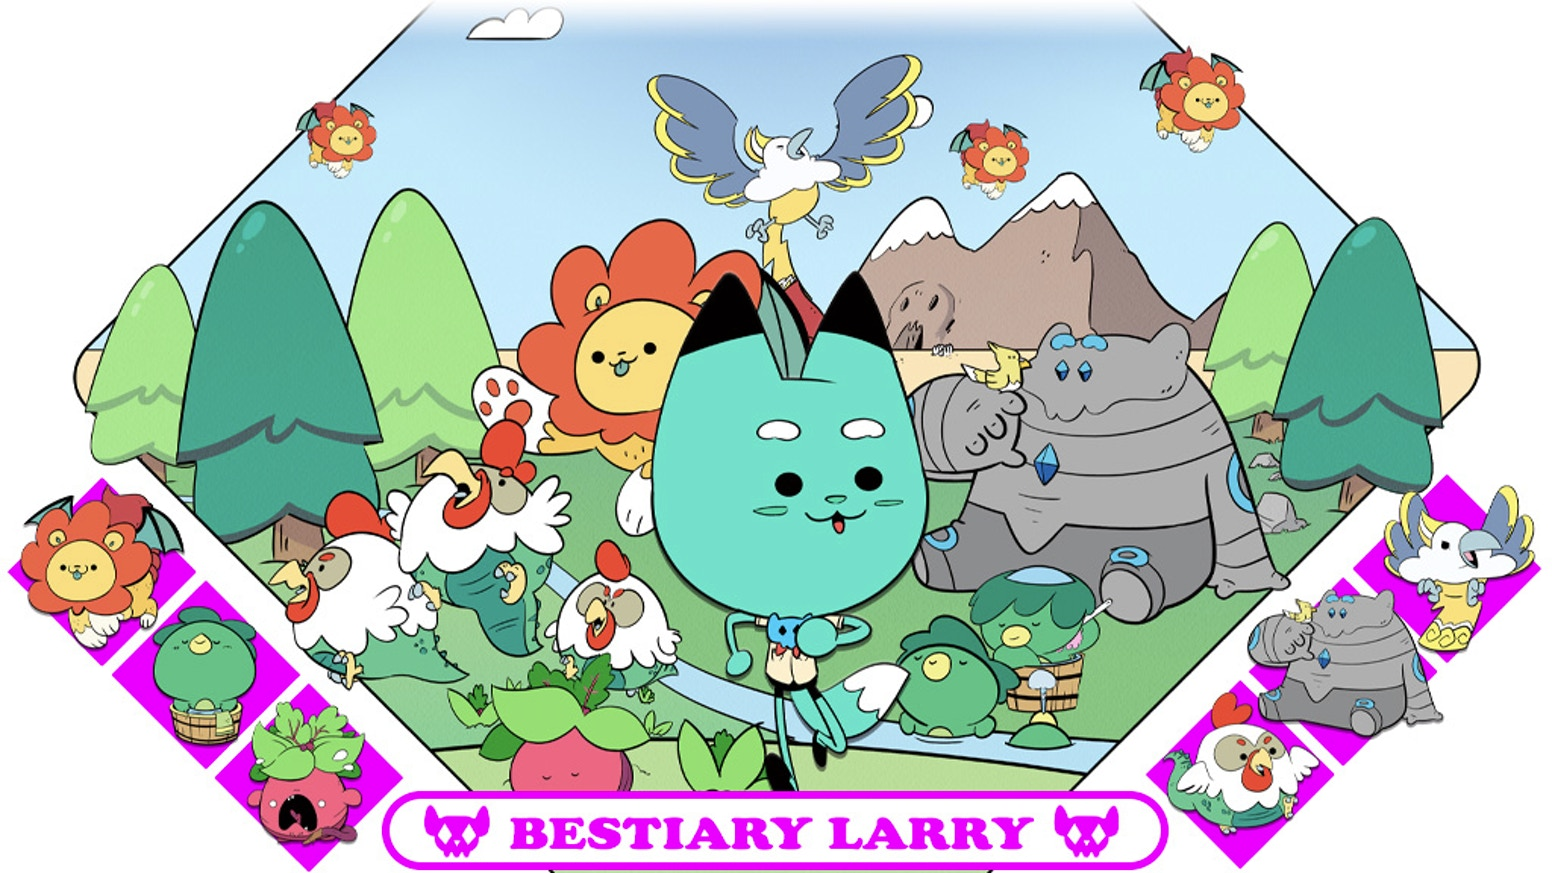 Bestiary Larry's Cute Collectible Creatures is a collectible hard enamel cloisonne' pin set of cute mythological monsters.